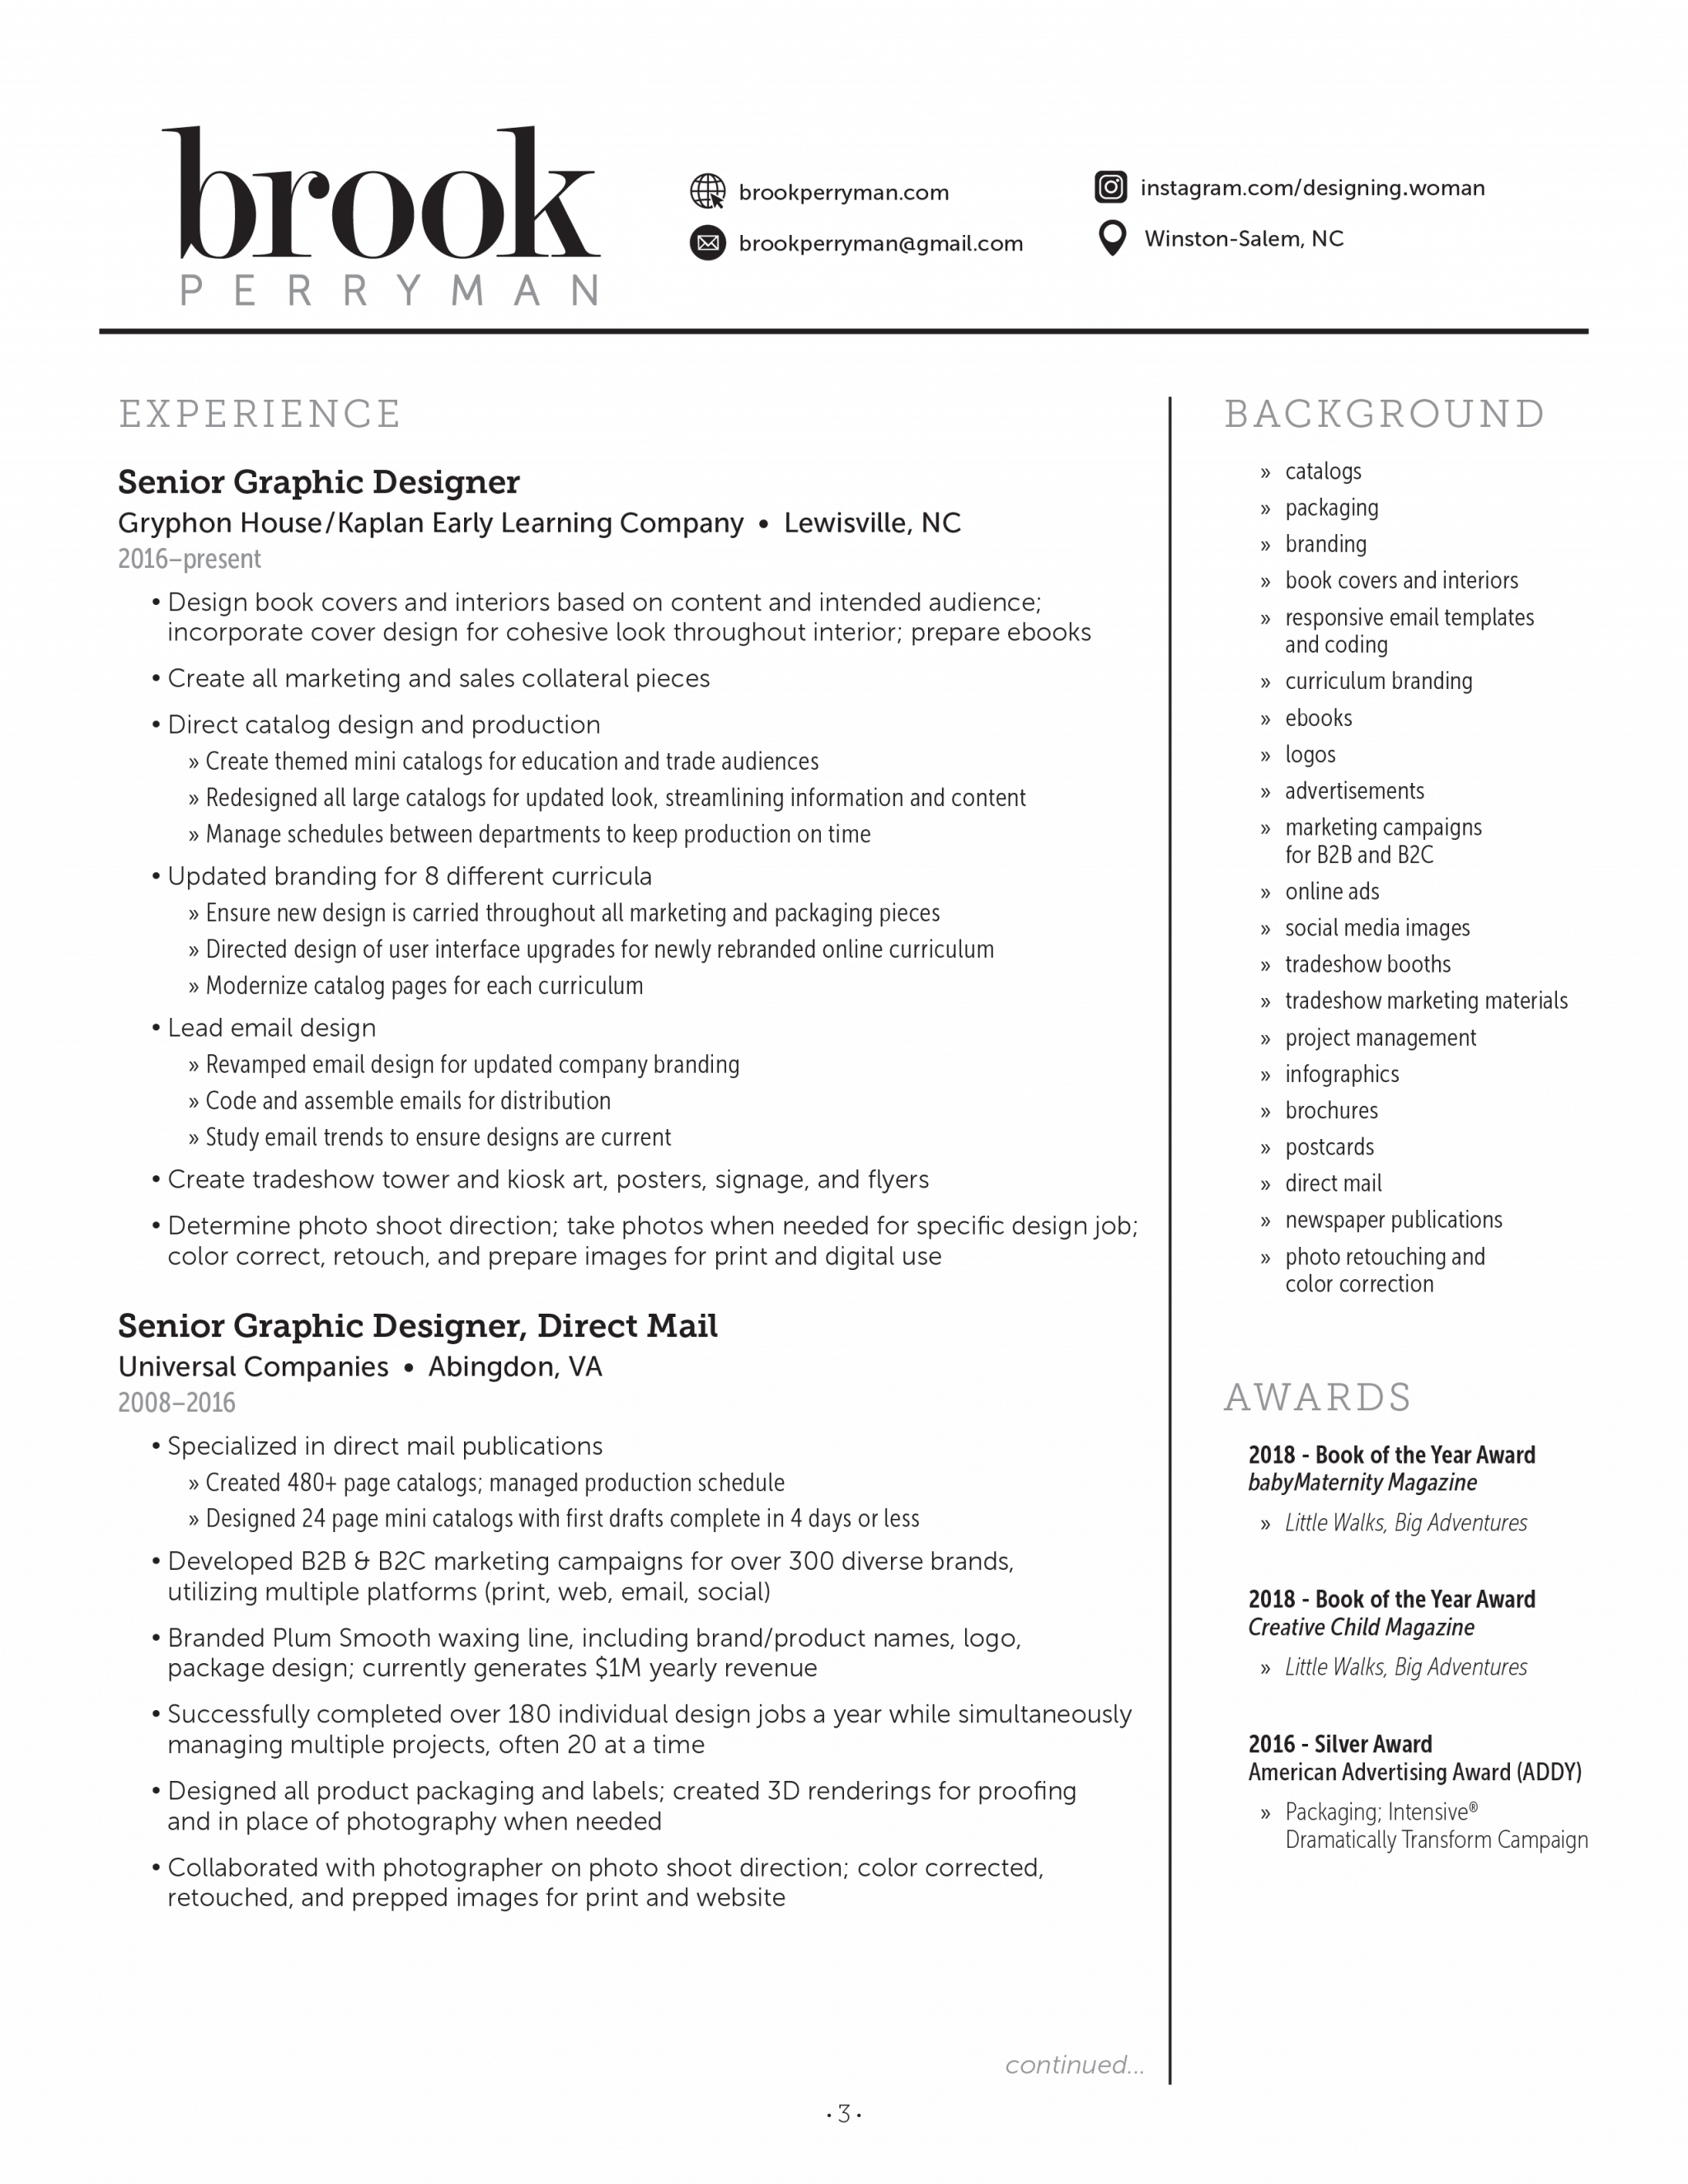 Brook Perryman downloadable resume PDF